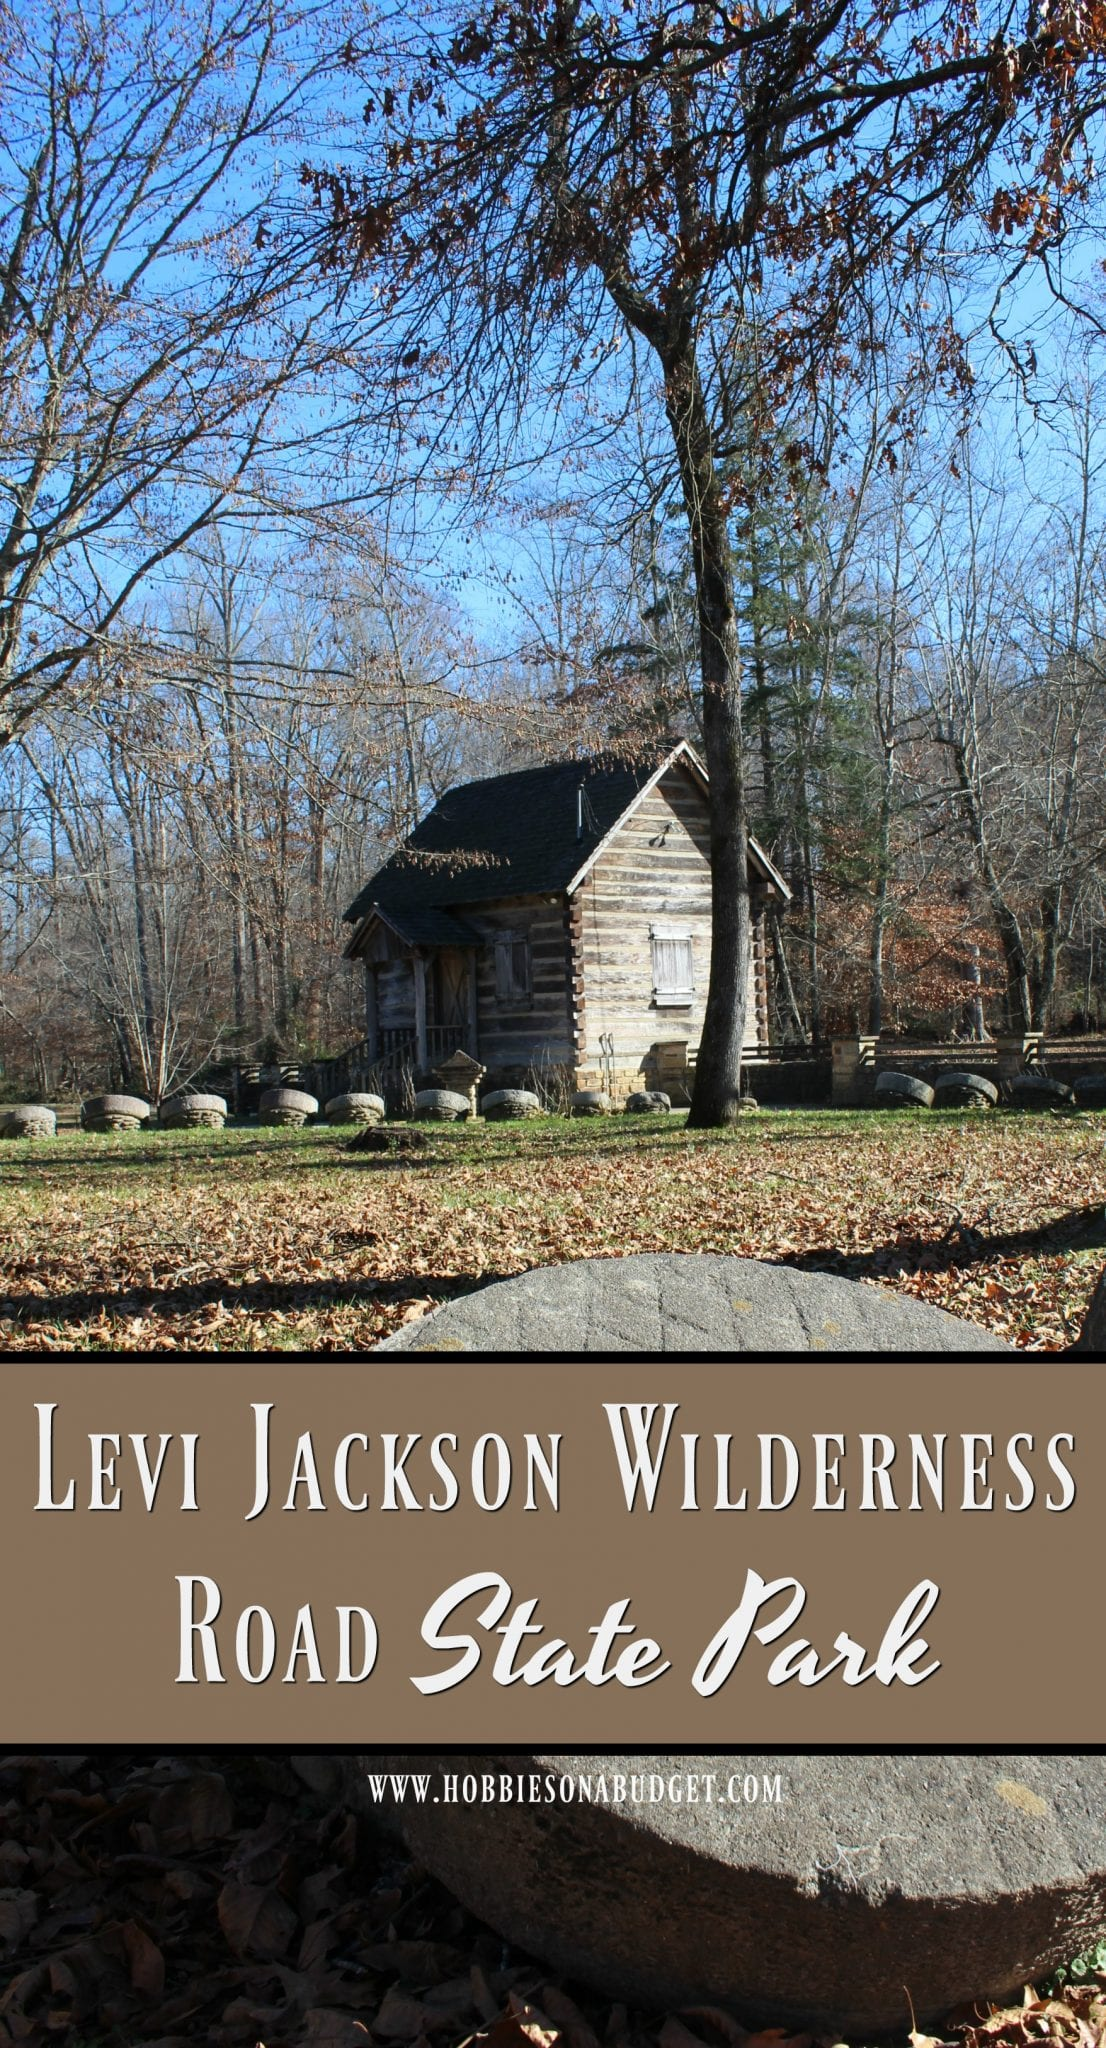 Levi Jackson Wilderness Road State Park